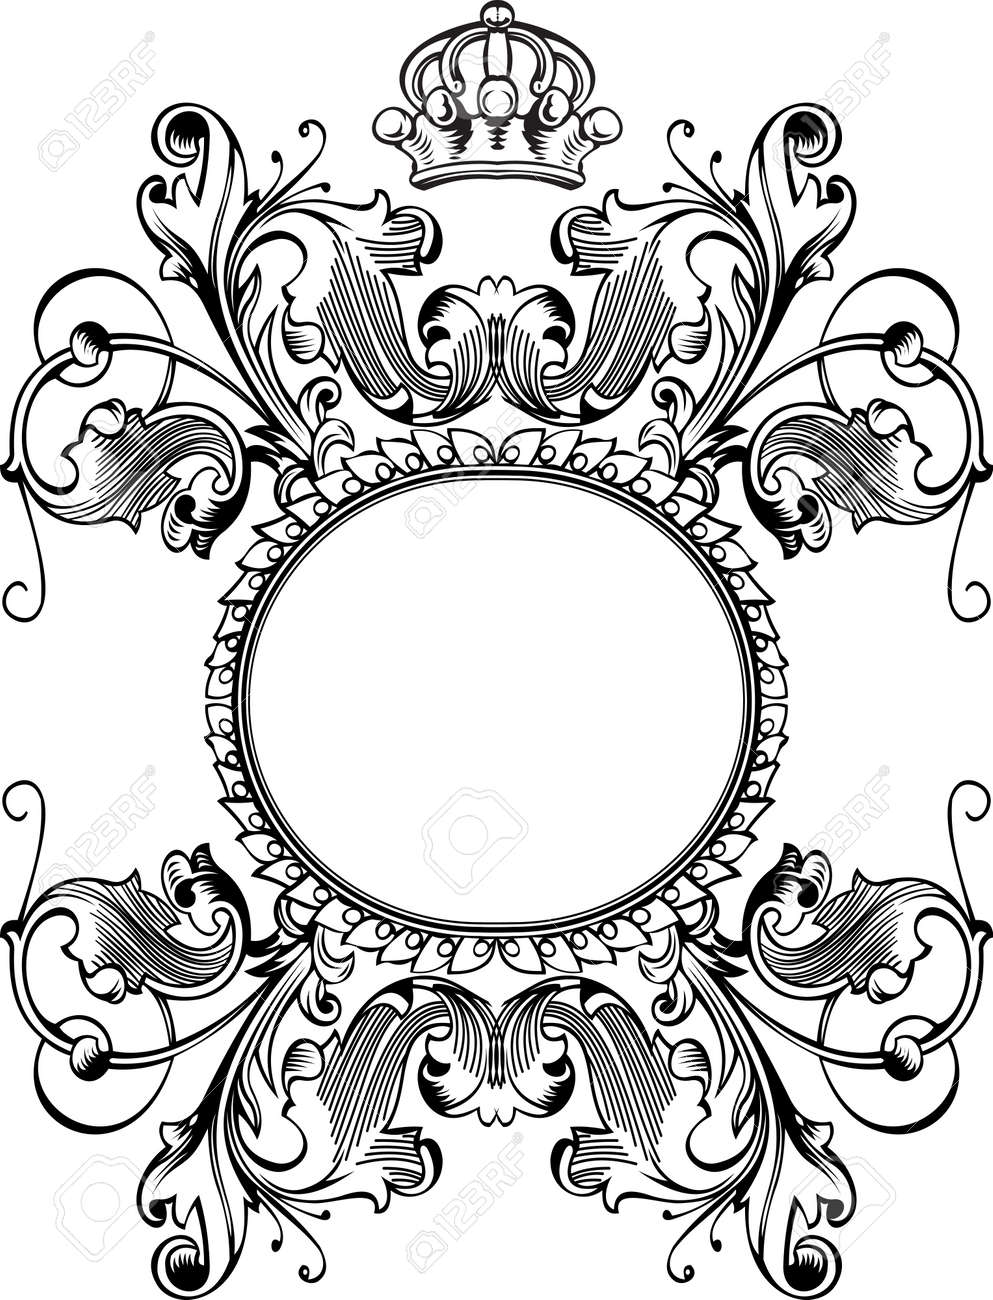 One Color Royal Crown Vintage Curves Banner Stock Vector - 9934850